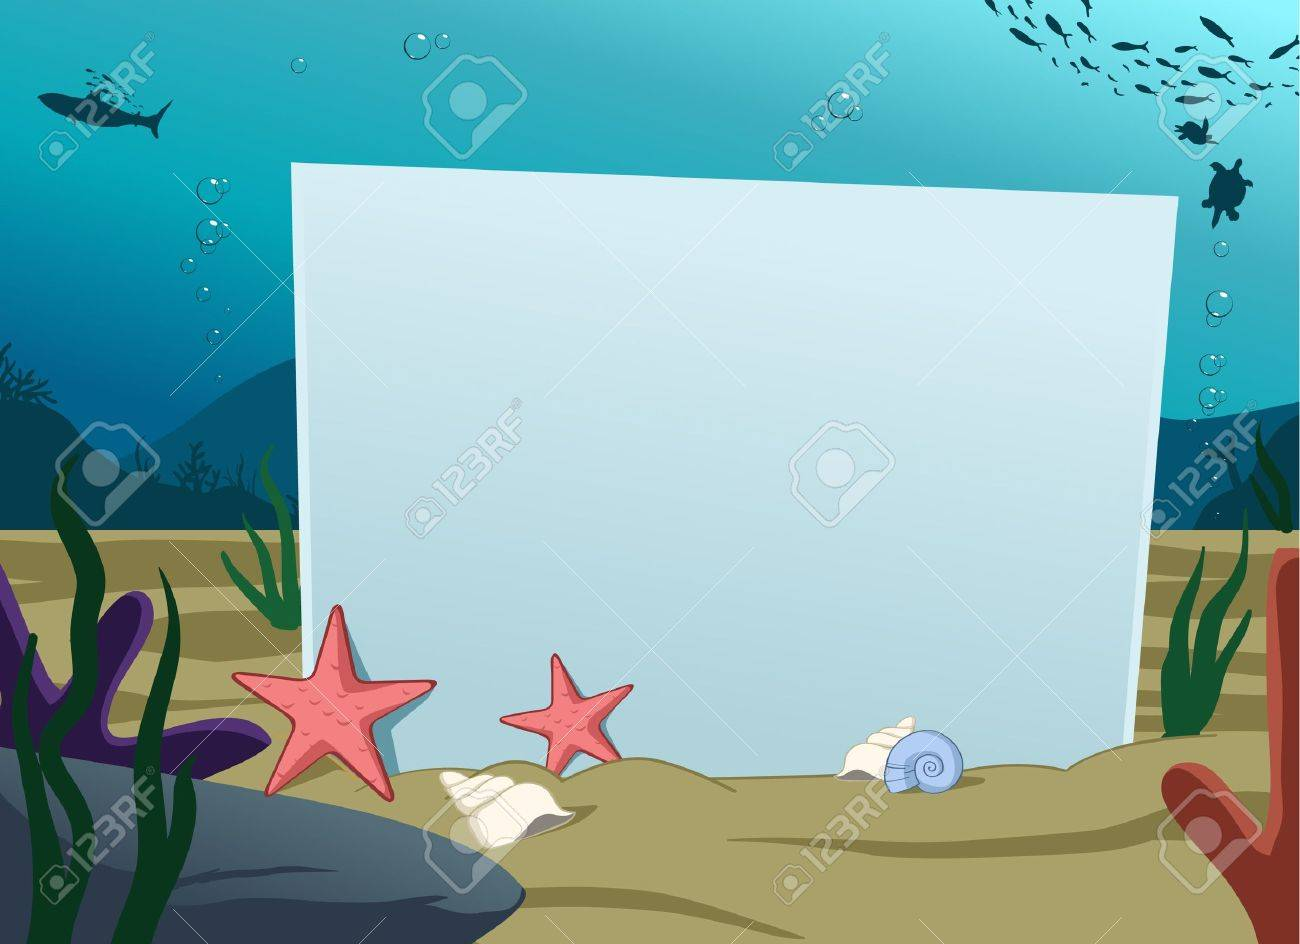 Image of blank board under water decoration Stock Vector - 10139961